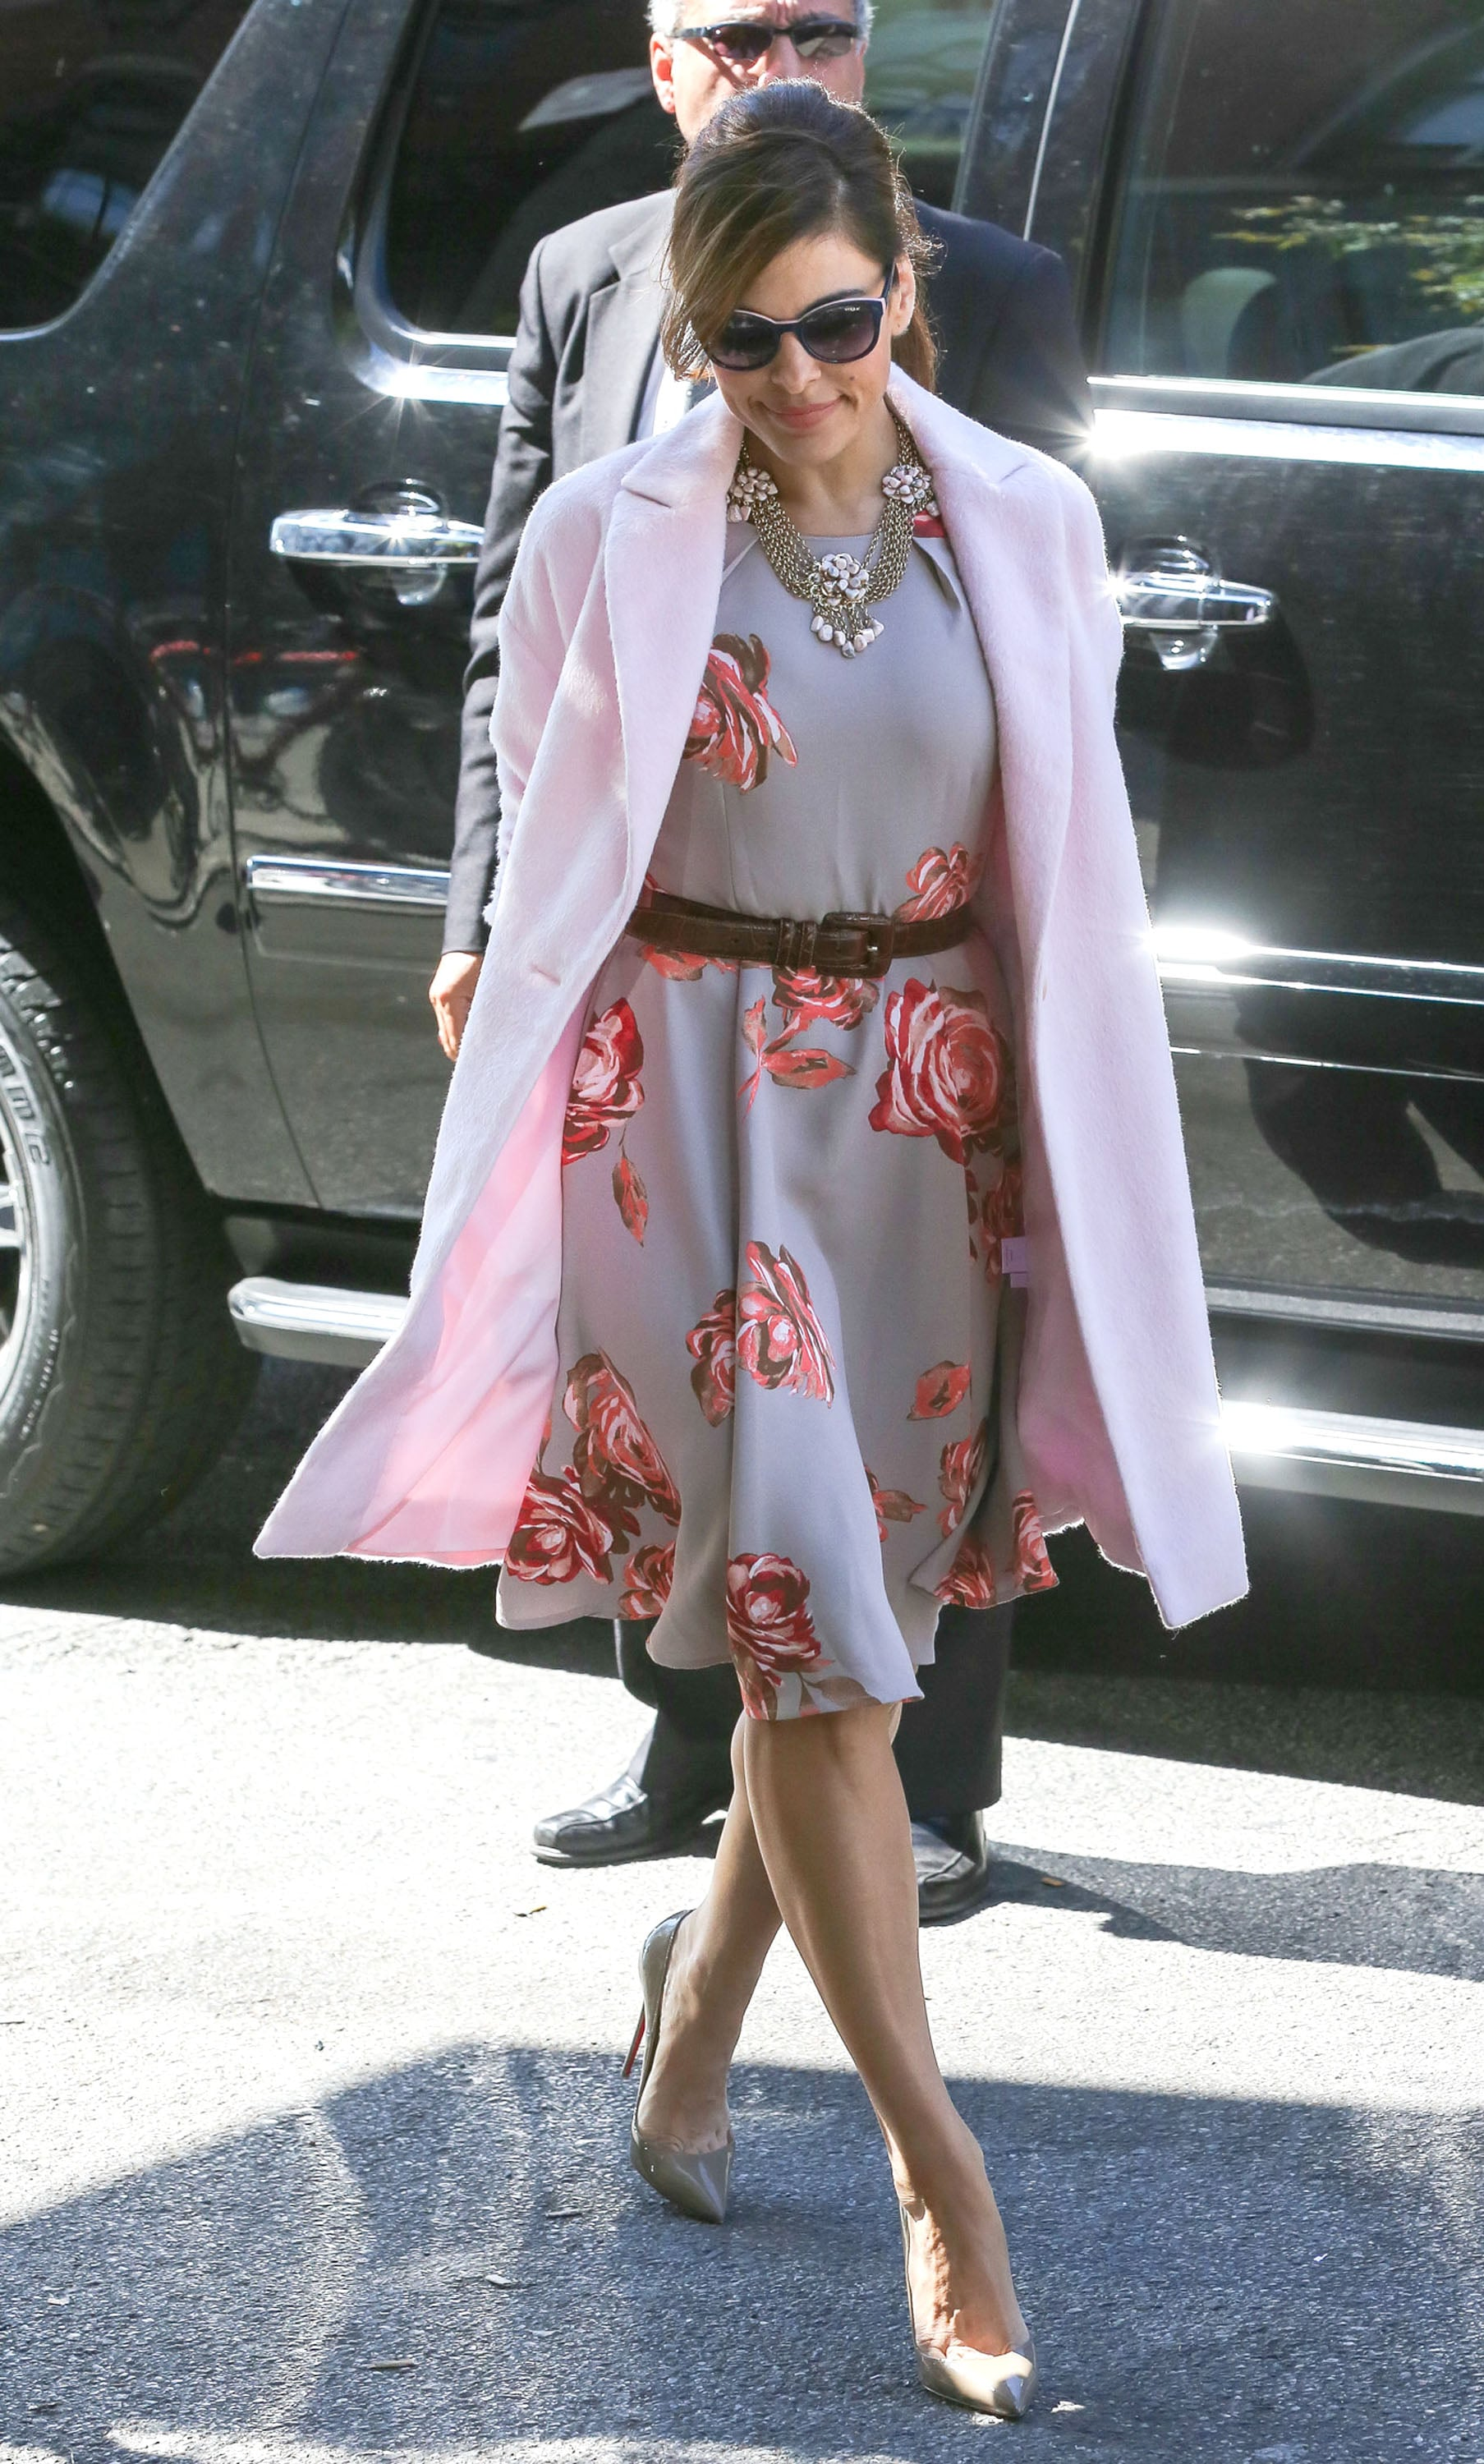 Donning one of her own blossoming creations from her New York & Co. collection, Eva Mendes looked picture-perfect in Fall 2013. Where to Wear: A moonlight stroll — complete with gelato.